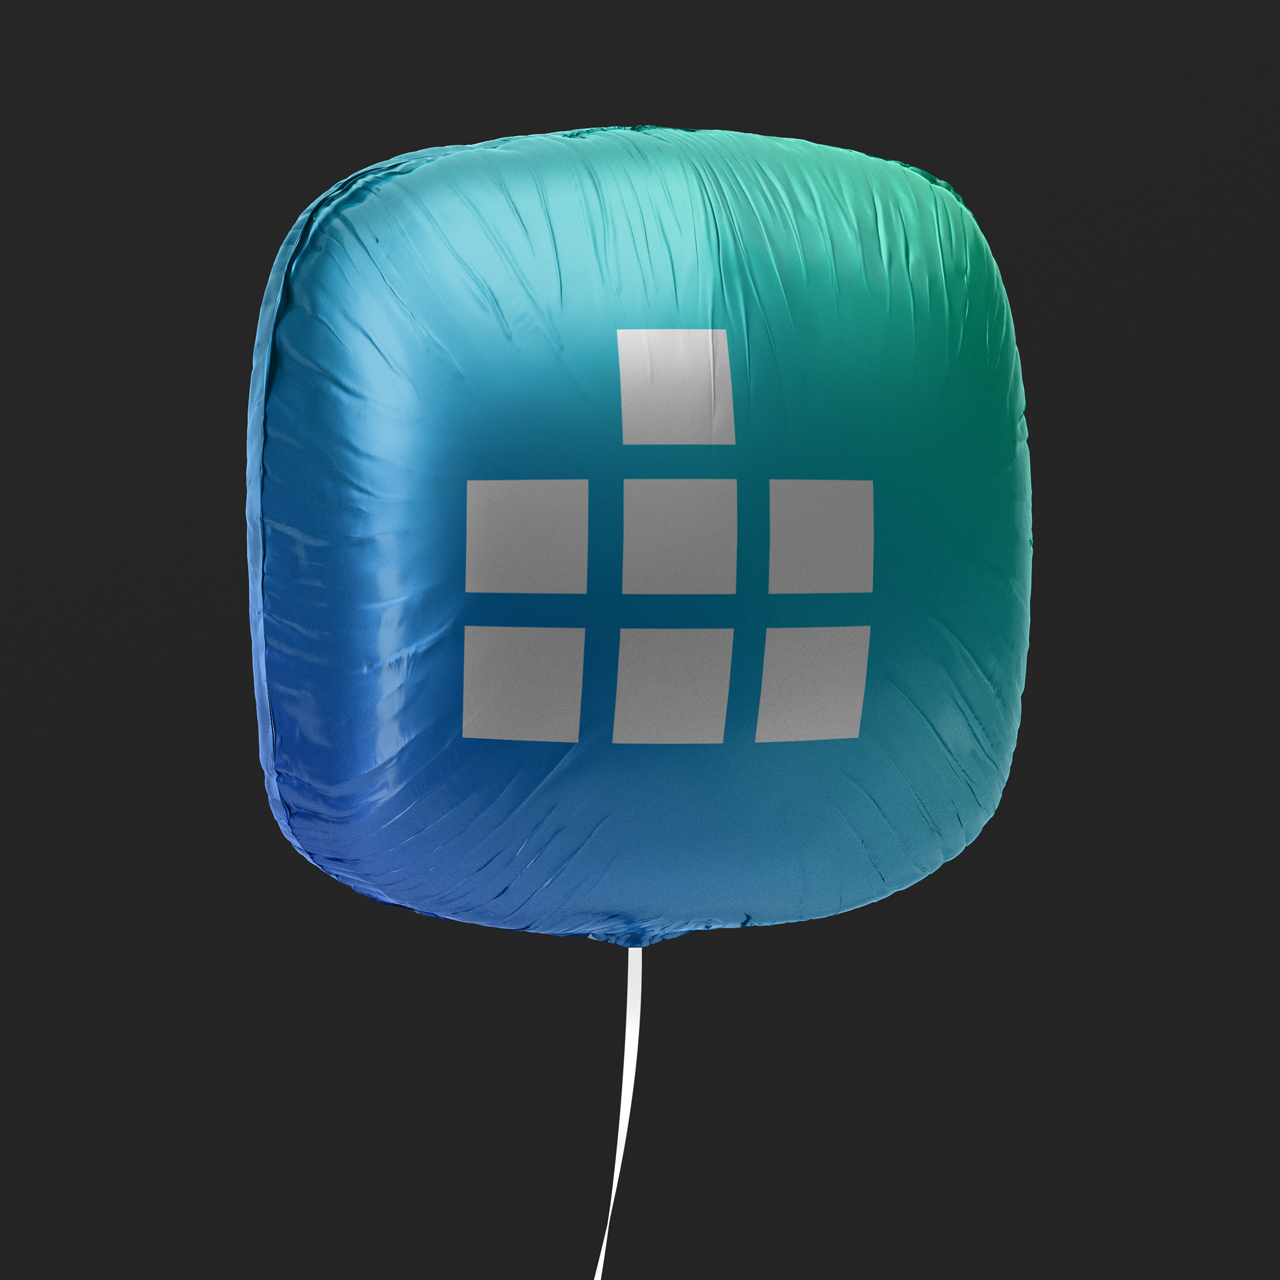 Digital Estate coloured balloon with white logo mockup by SPX